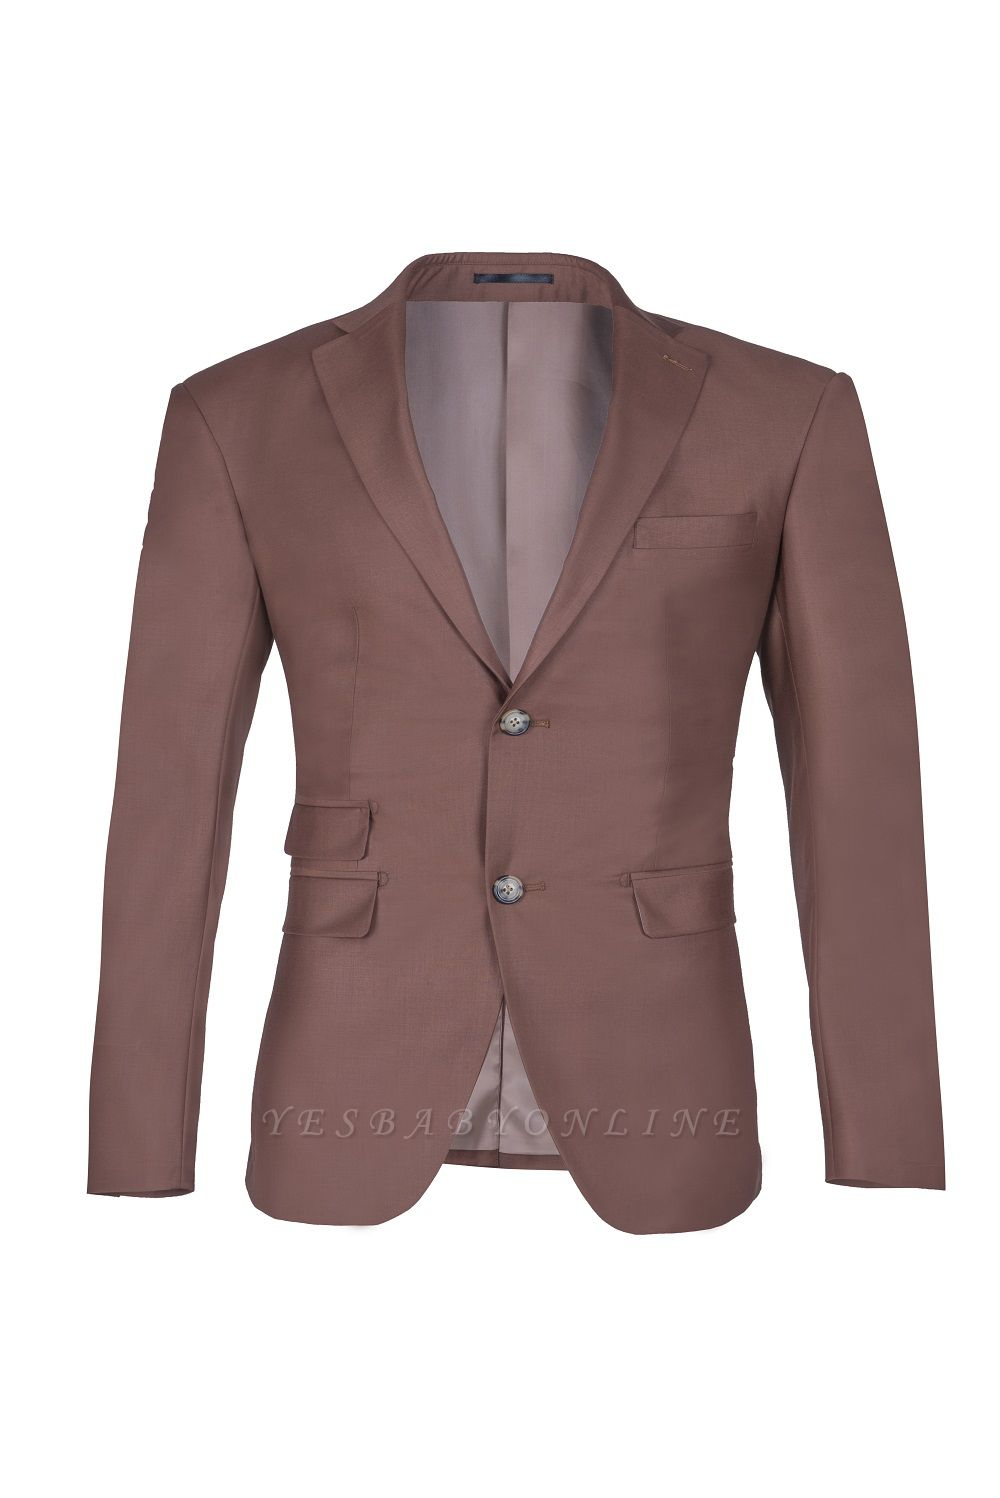 Chocolate Stylish Design Peak Lapel Two Button Single Breasted Wedding Suit